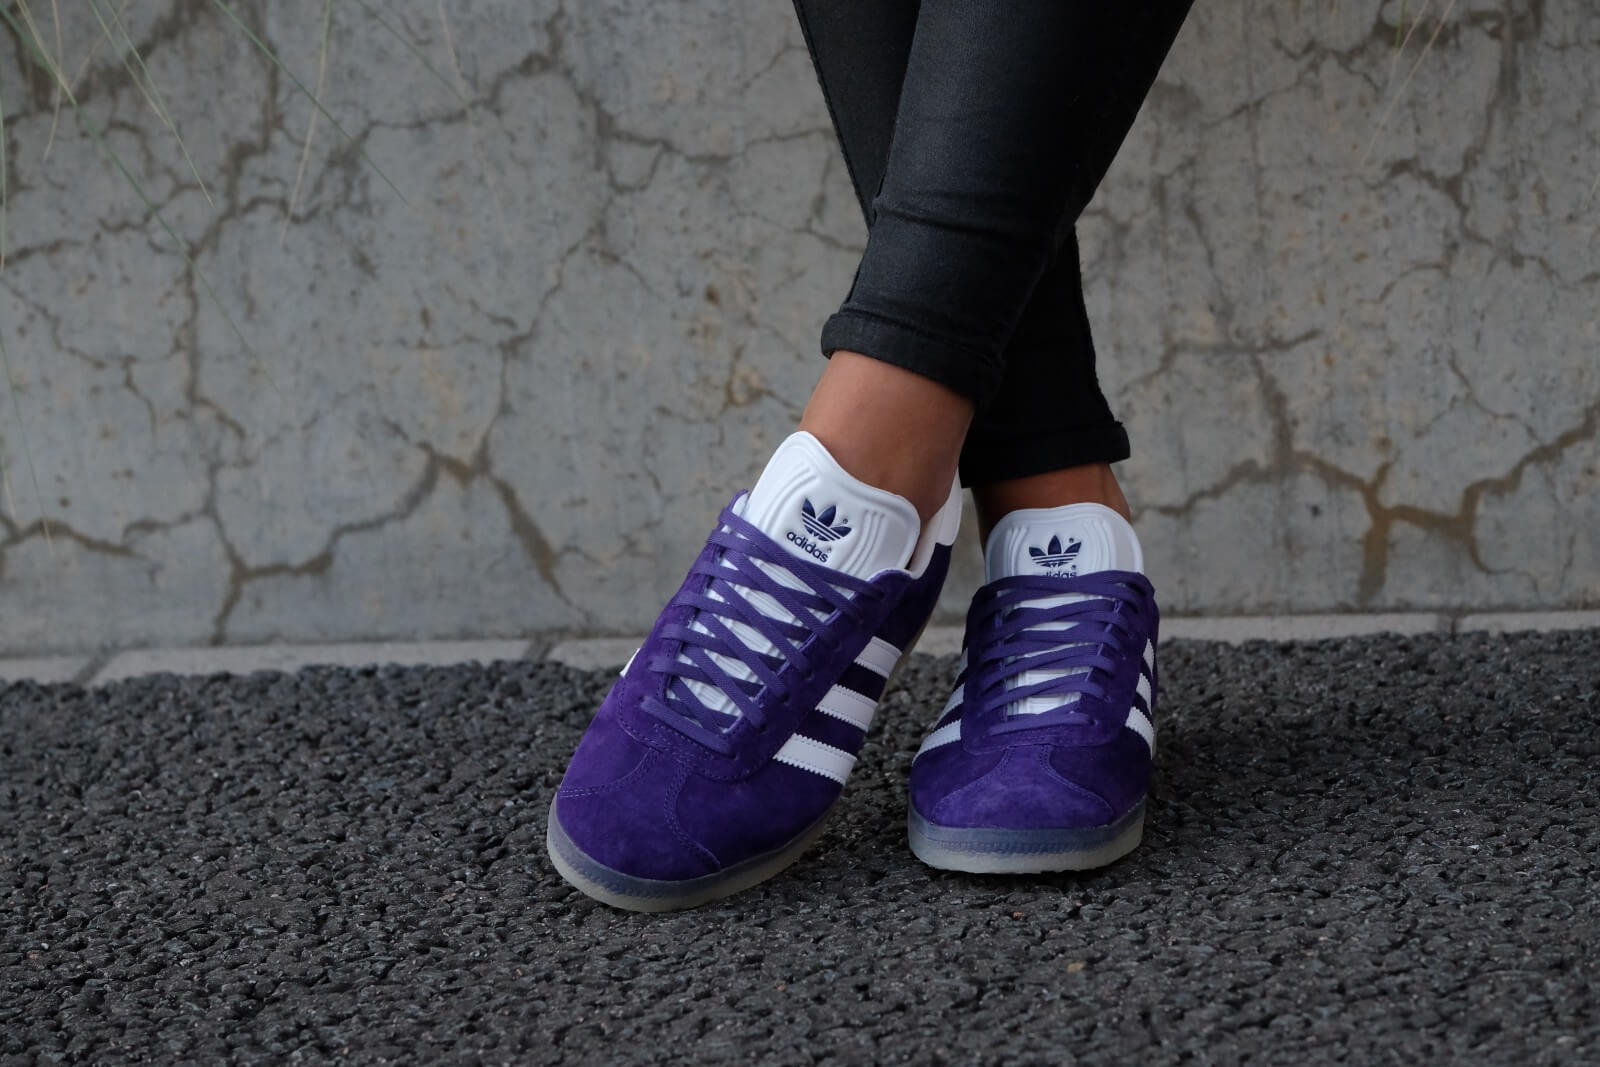 Adidas Gazelle Unity Purple/ White